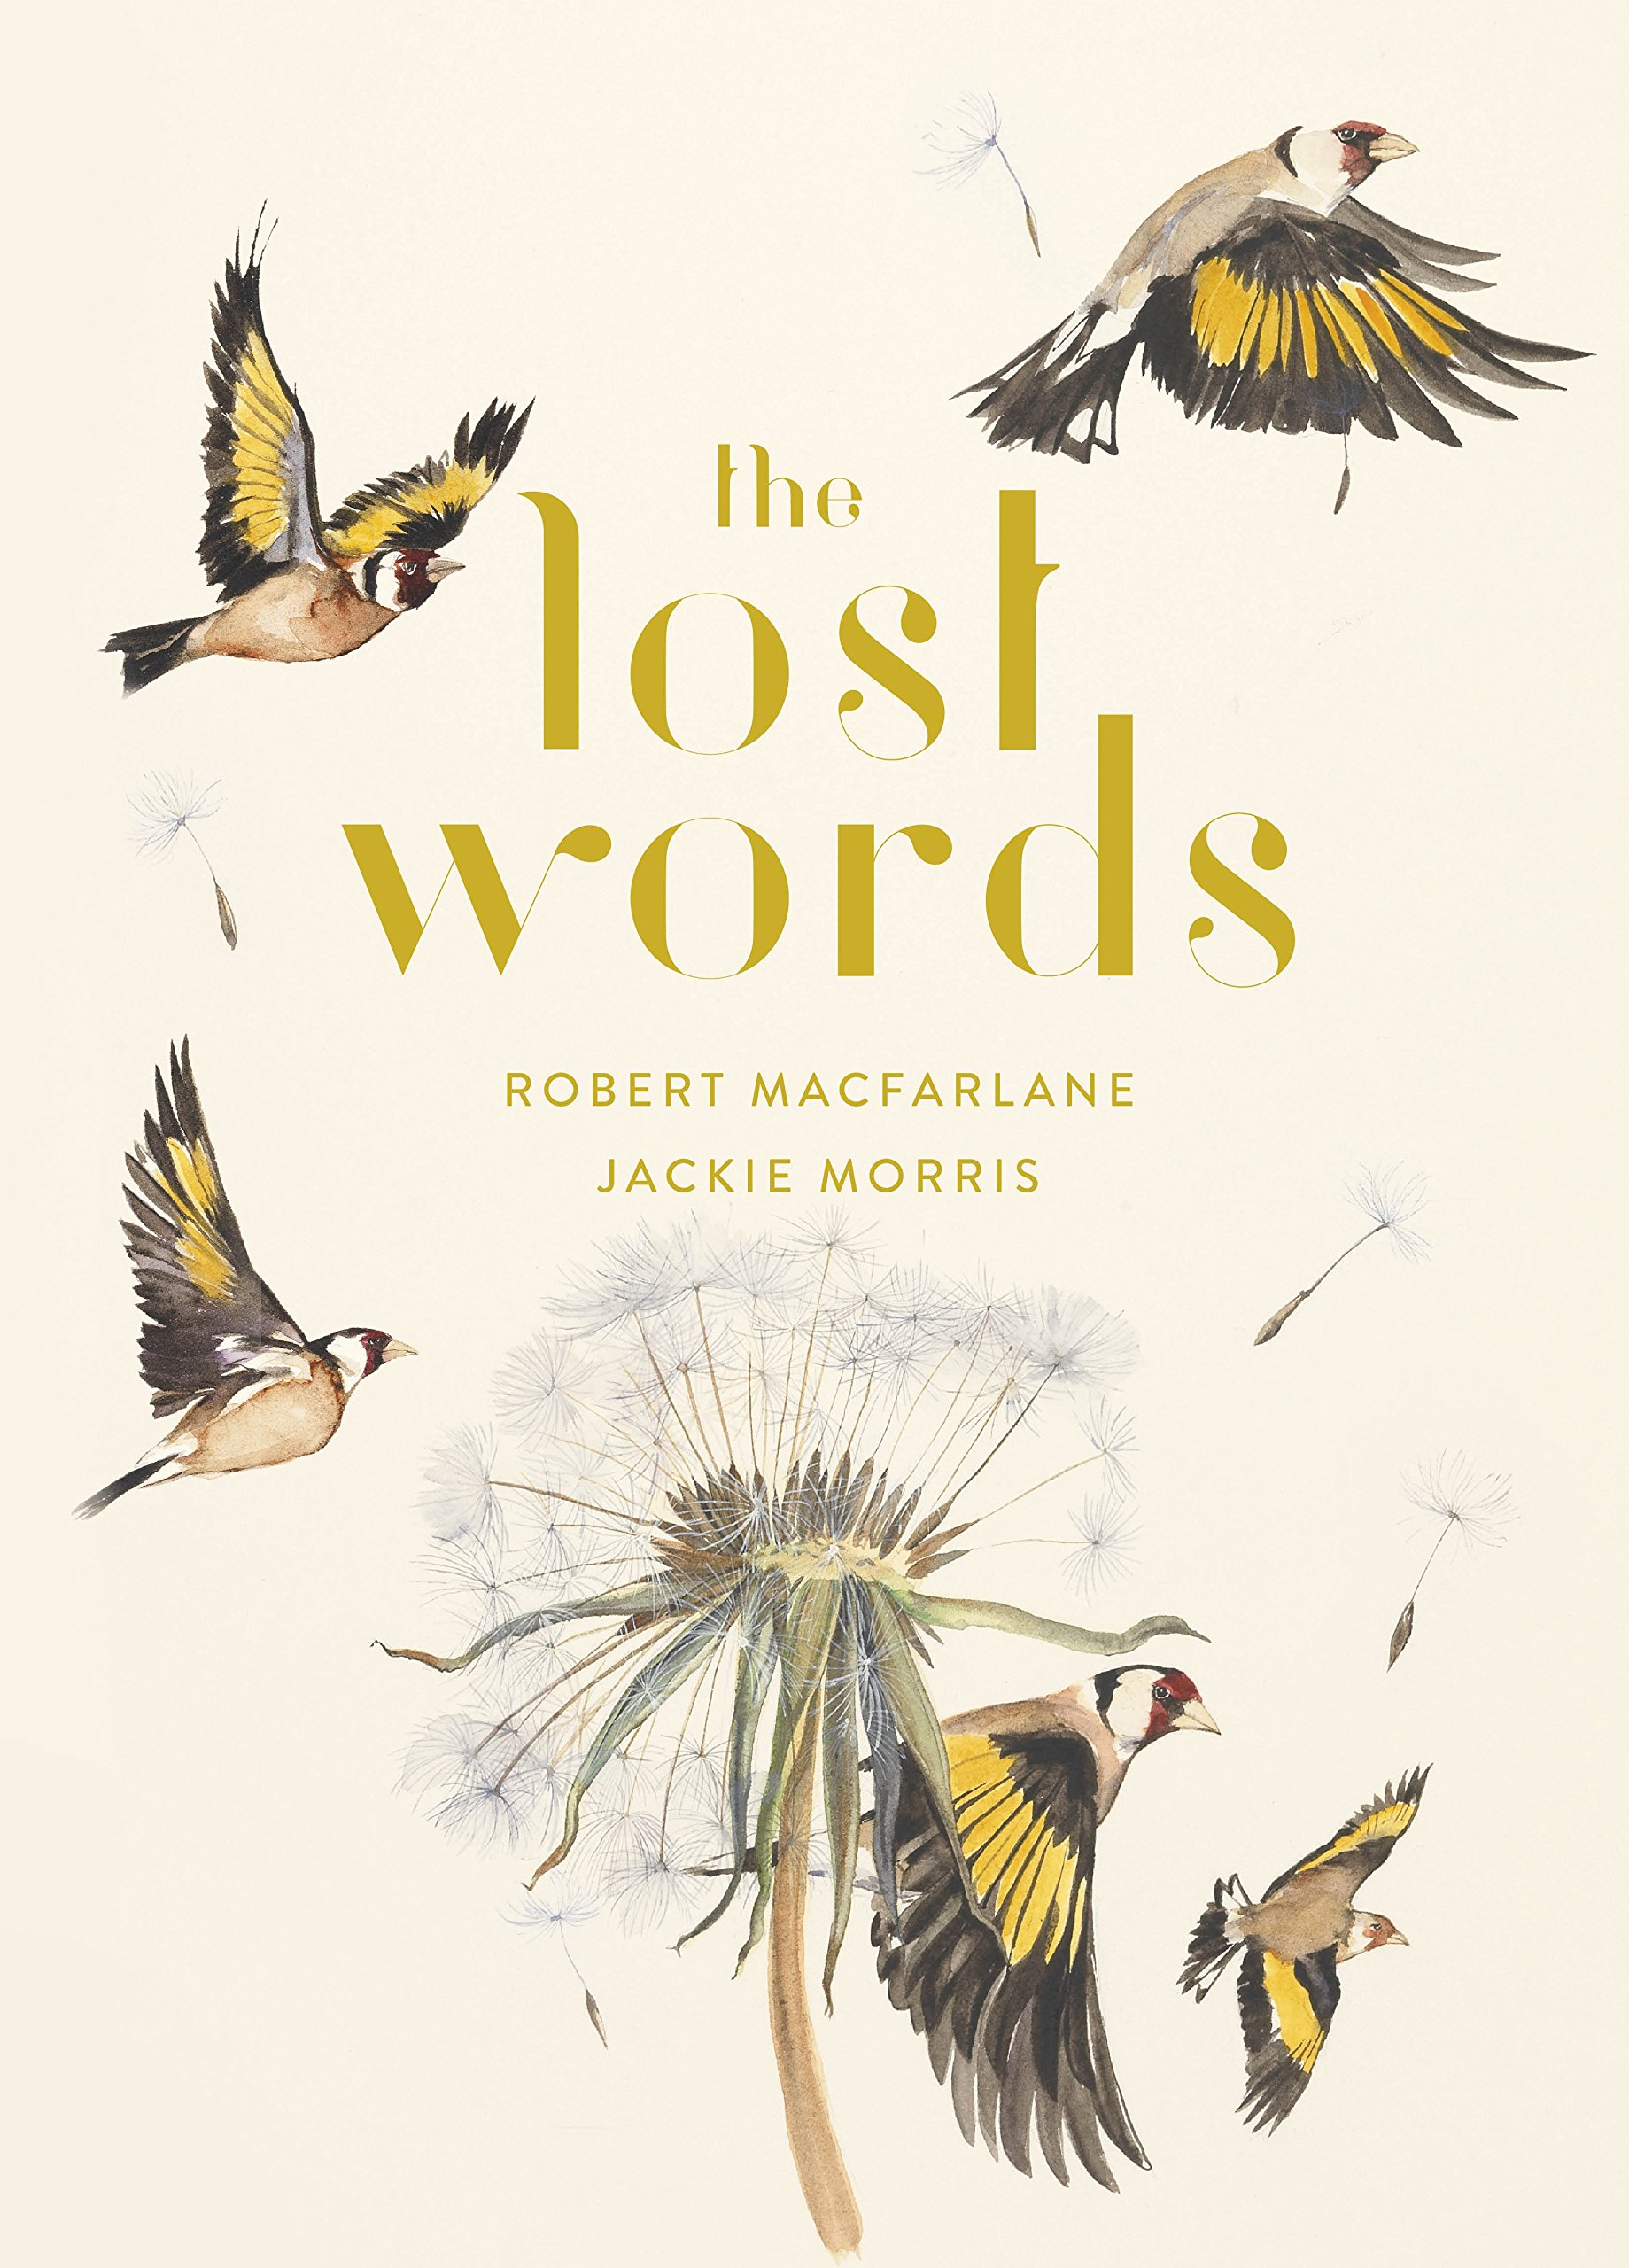 The Lost Words written by Robert Macfarlane and illustrated by Jackie Morris